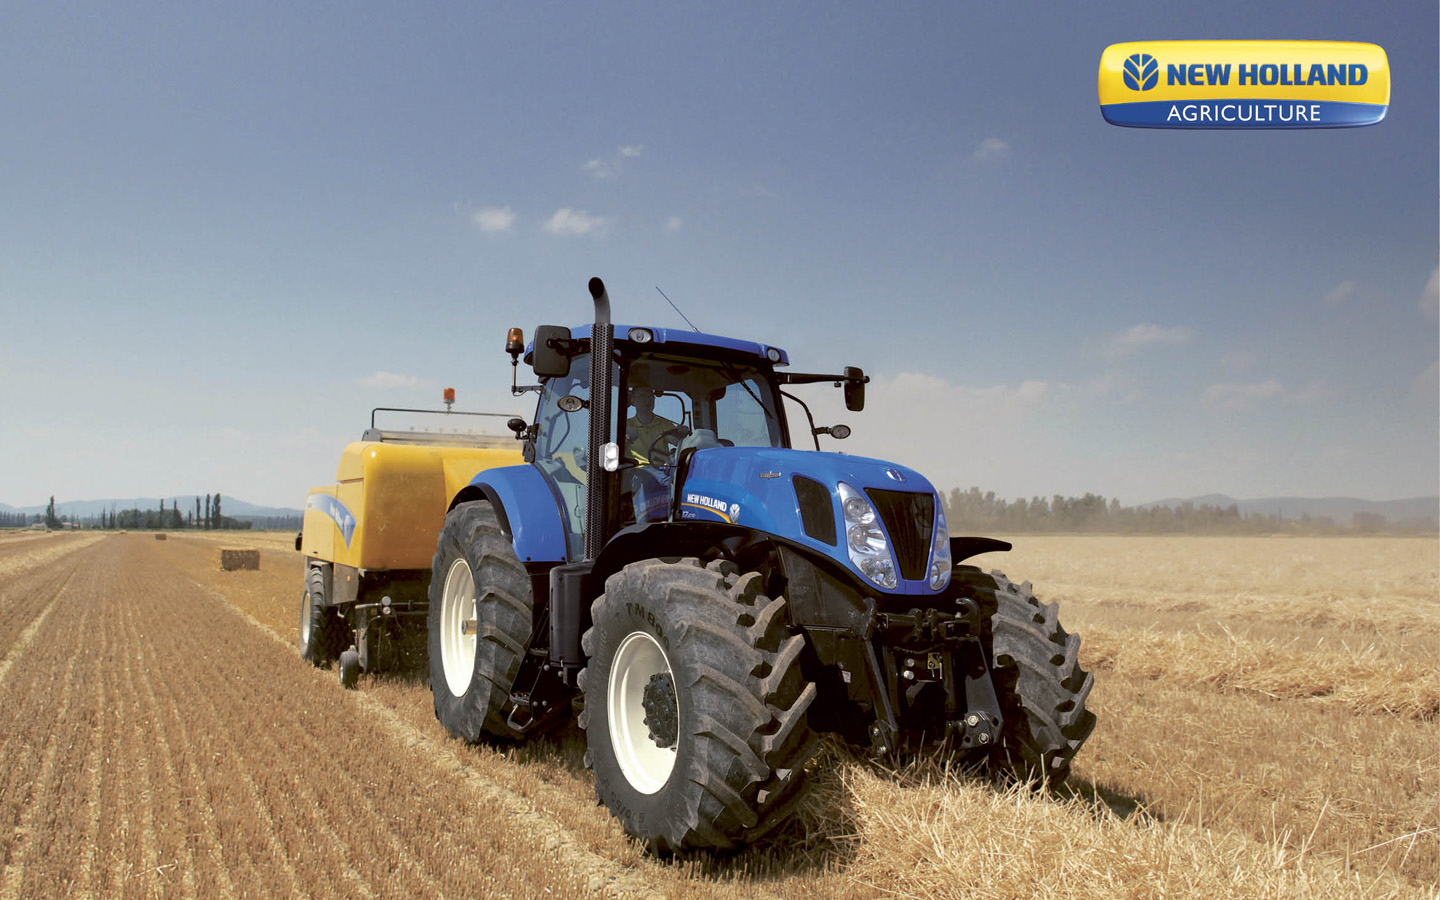 Download New Holland Wallpaper Gallery